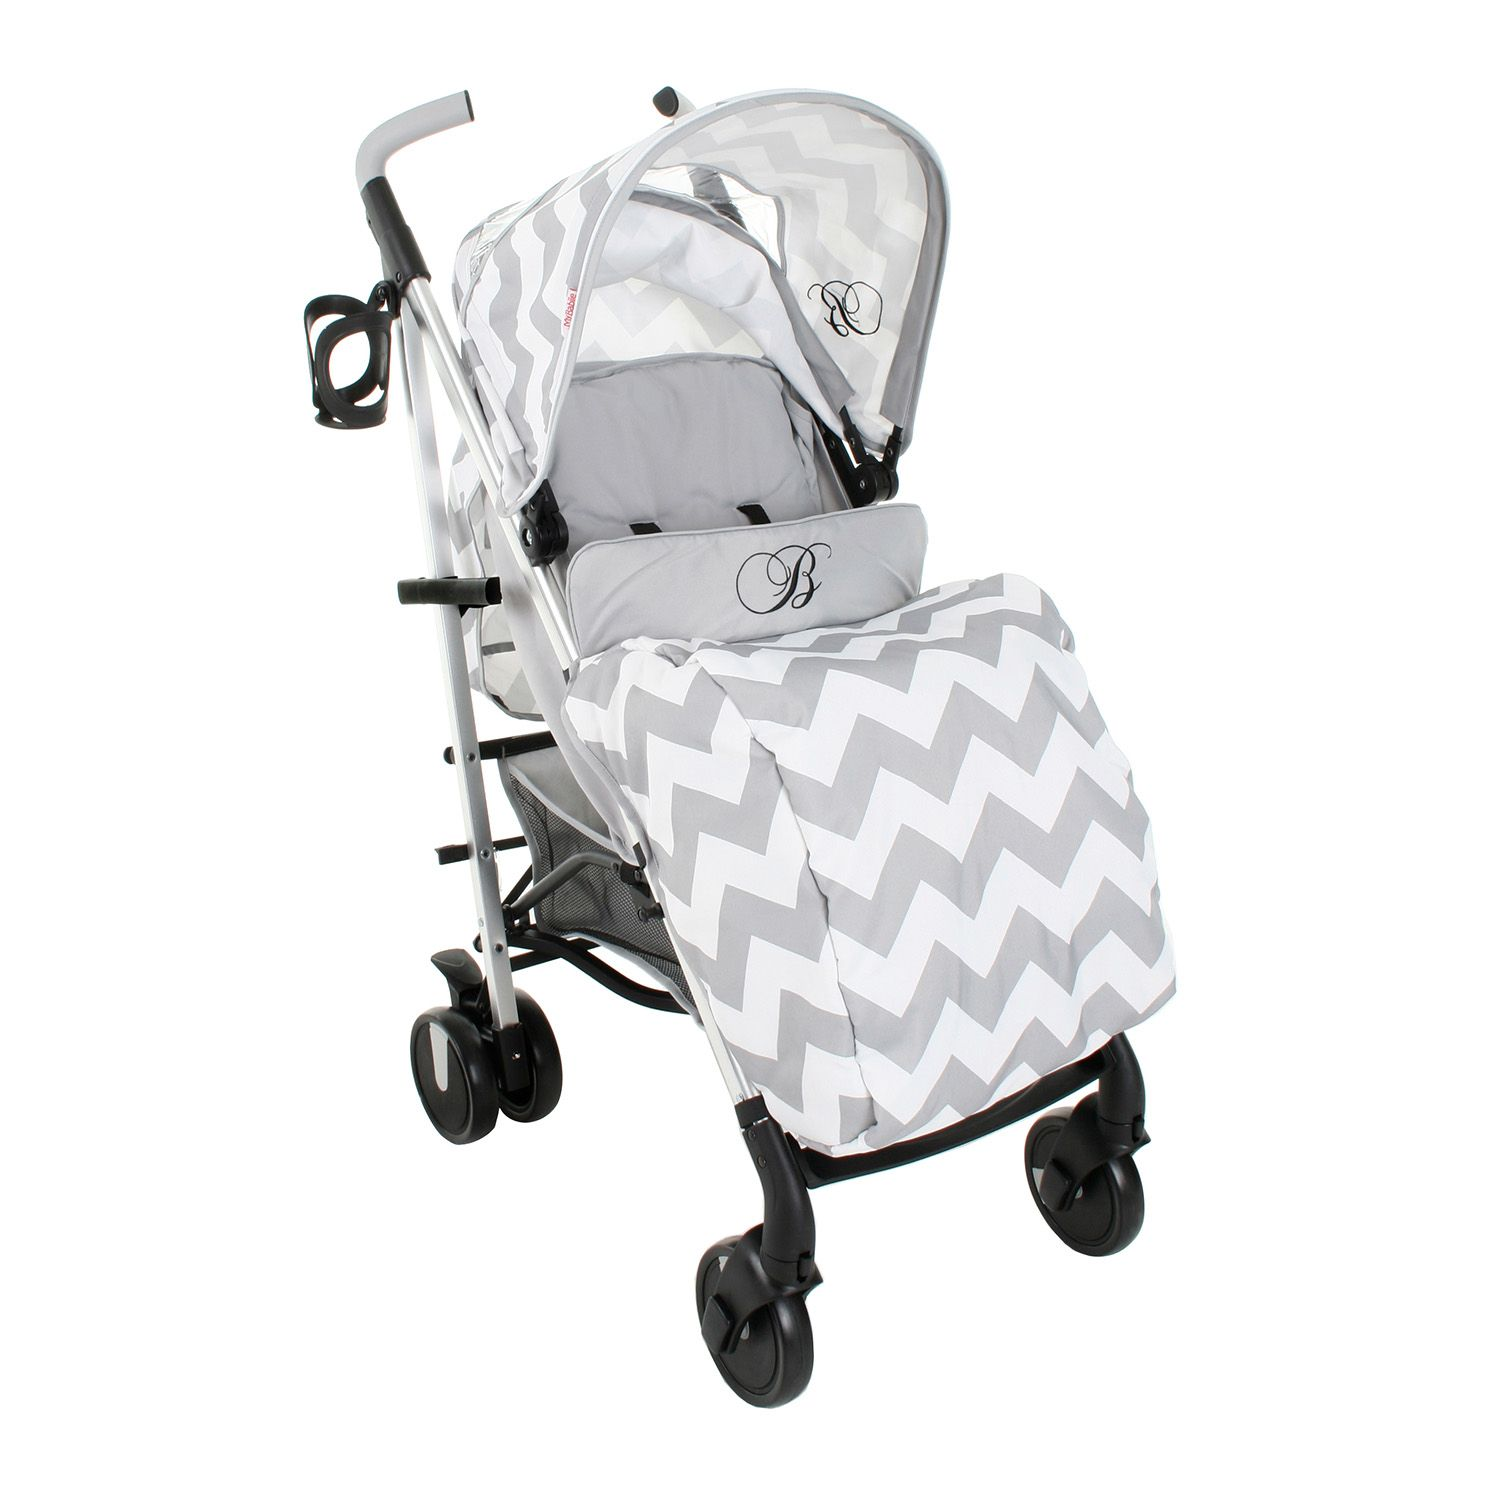 My Babiie Billie Faiers MB50 Stroller in Grey Chevron – Next Day Delivery My Babiie Billie